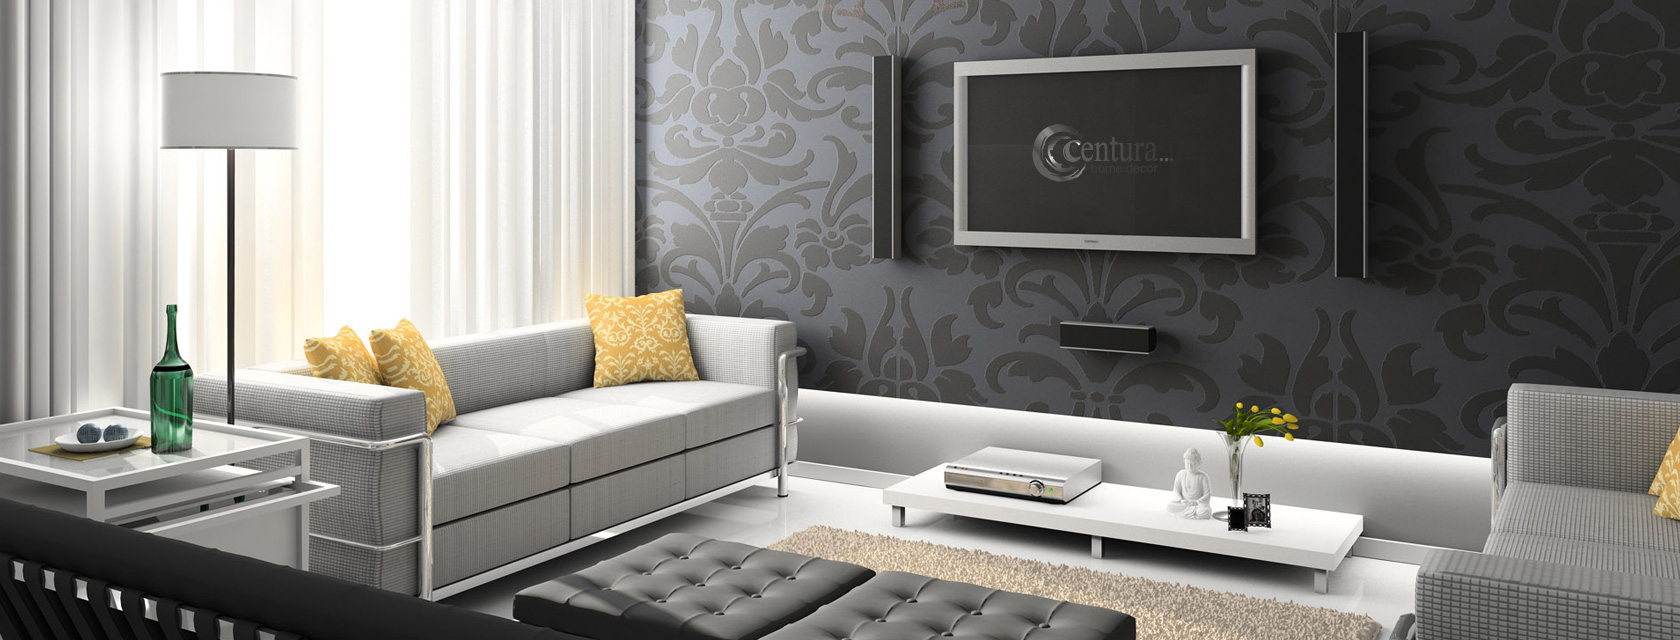 Centura Home Decor